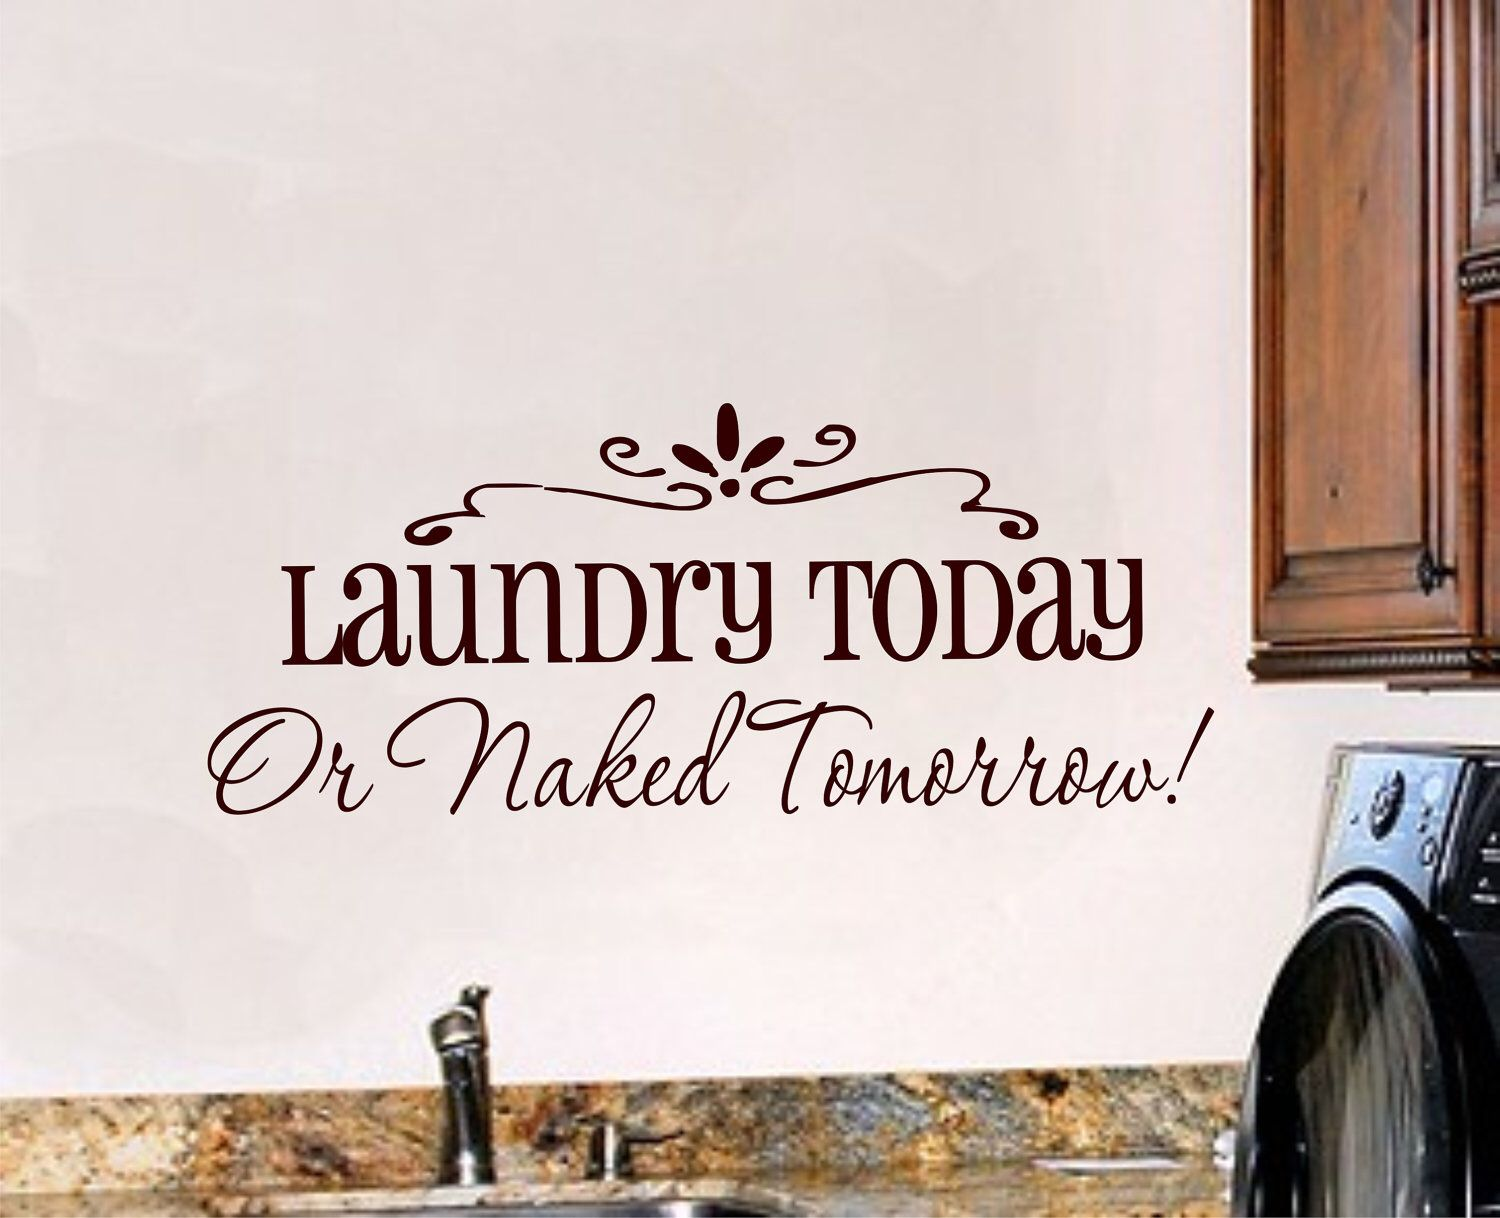 Laundry Room Wall Decal   Vinyl Lettering   Vinyl Wall Art By  JustTheFrosting On Etsy Https://www.etsy.com/listing/94564645/laundry Room  Wall Decal Vinyl  ...